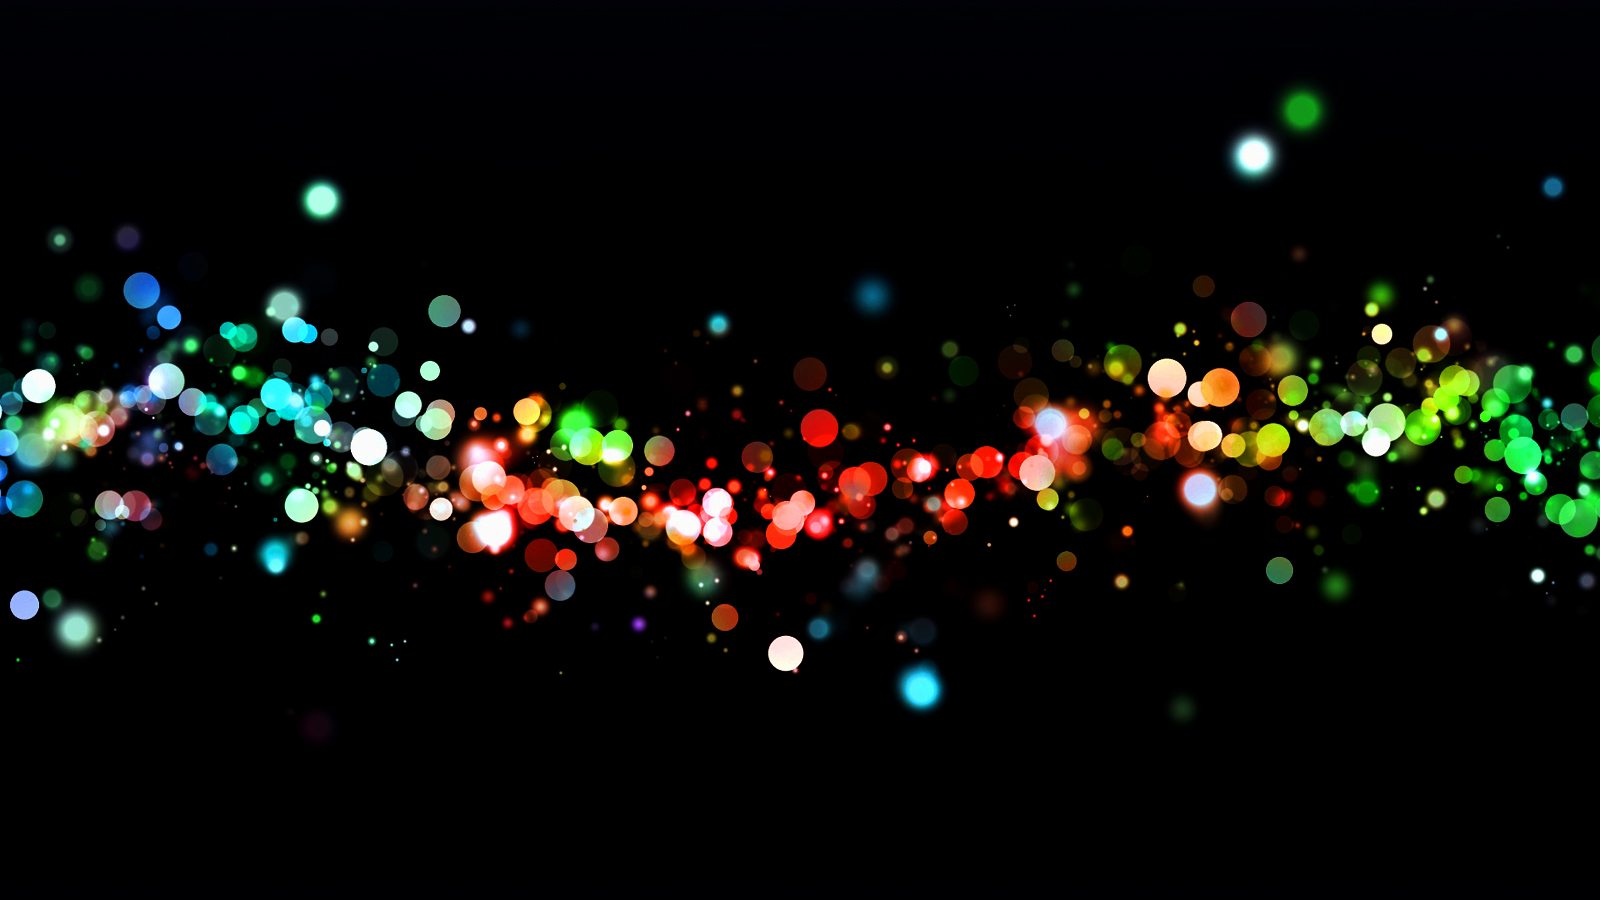 Abstract Lights Wallpaper Page 1